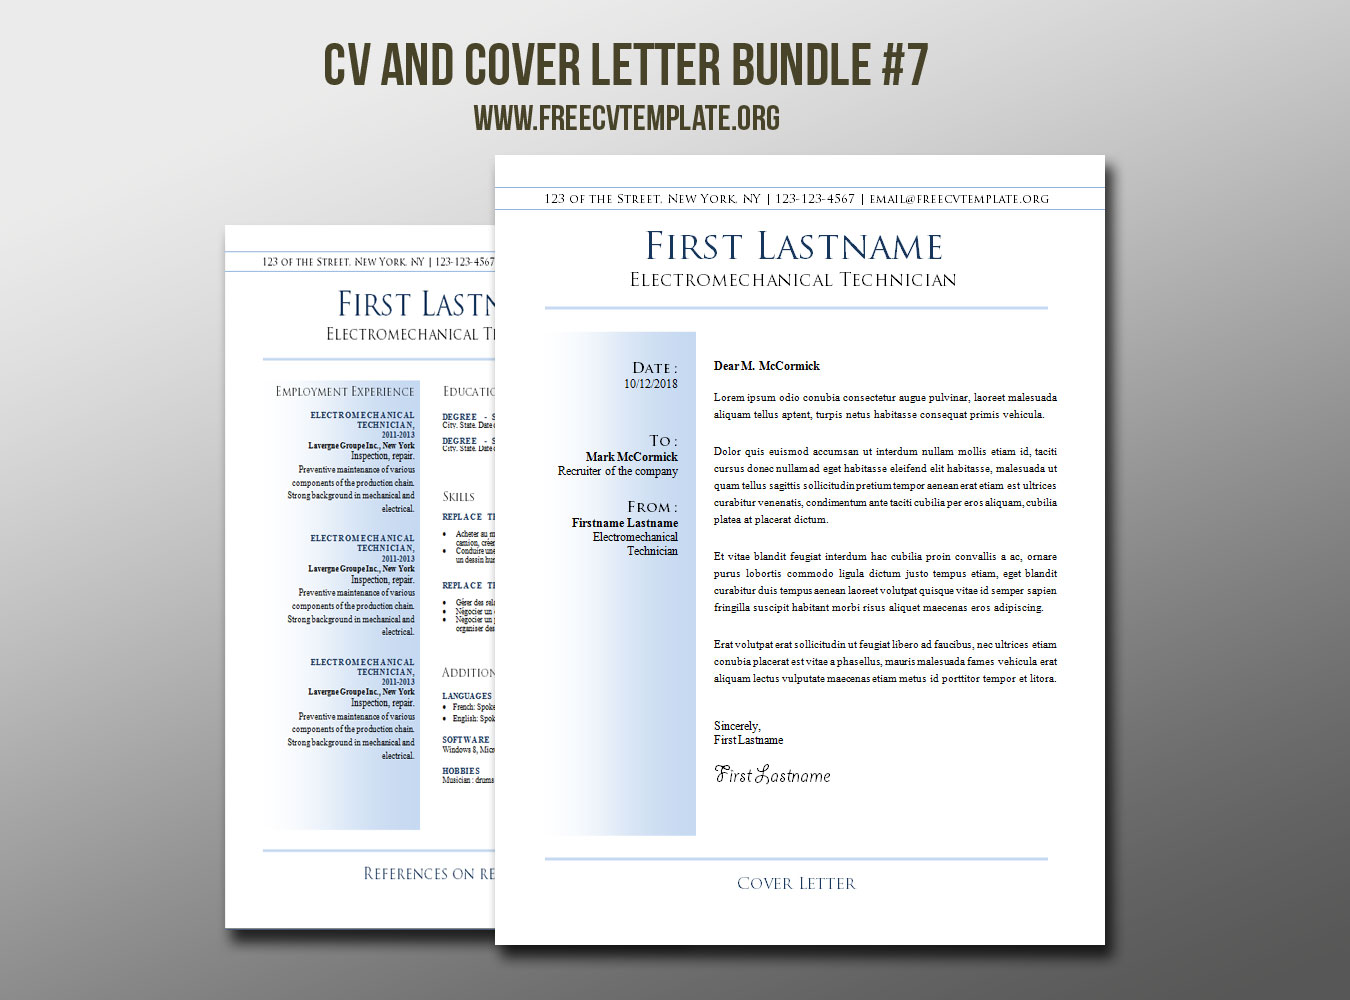 CV and Cover Letter Bundle #7